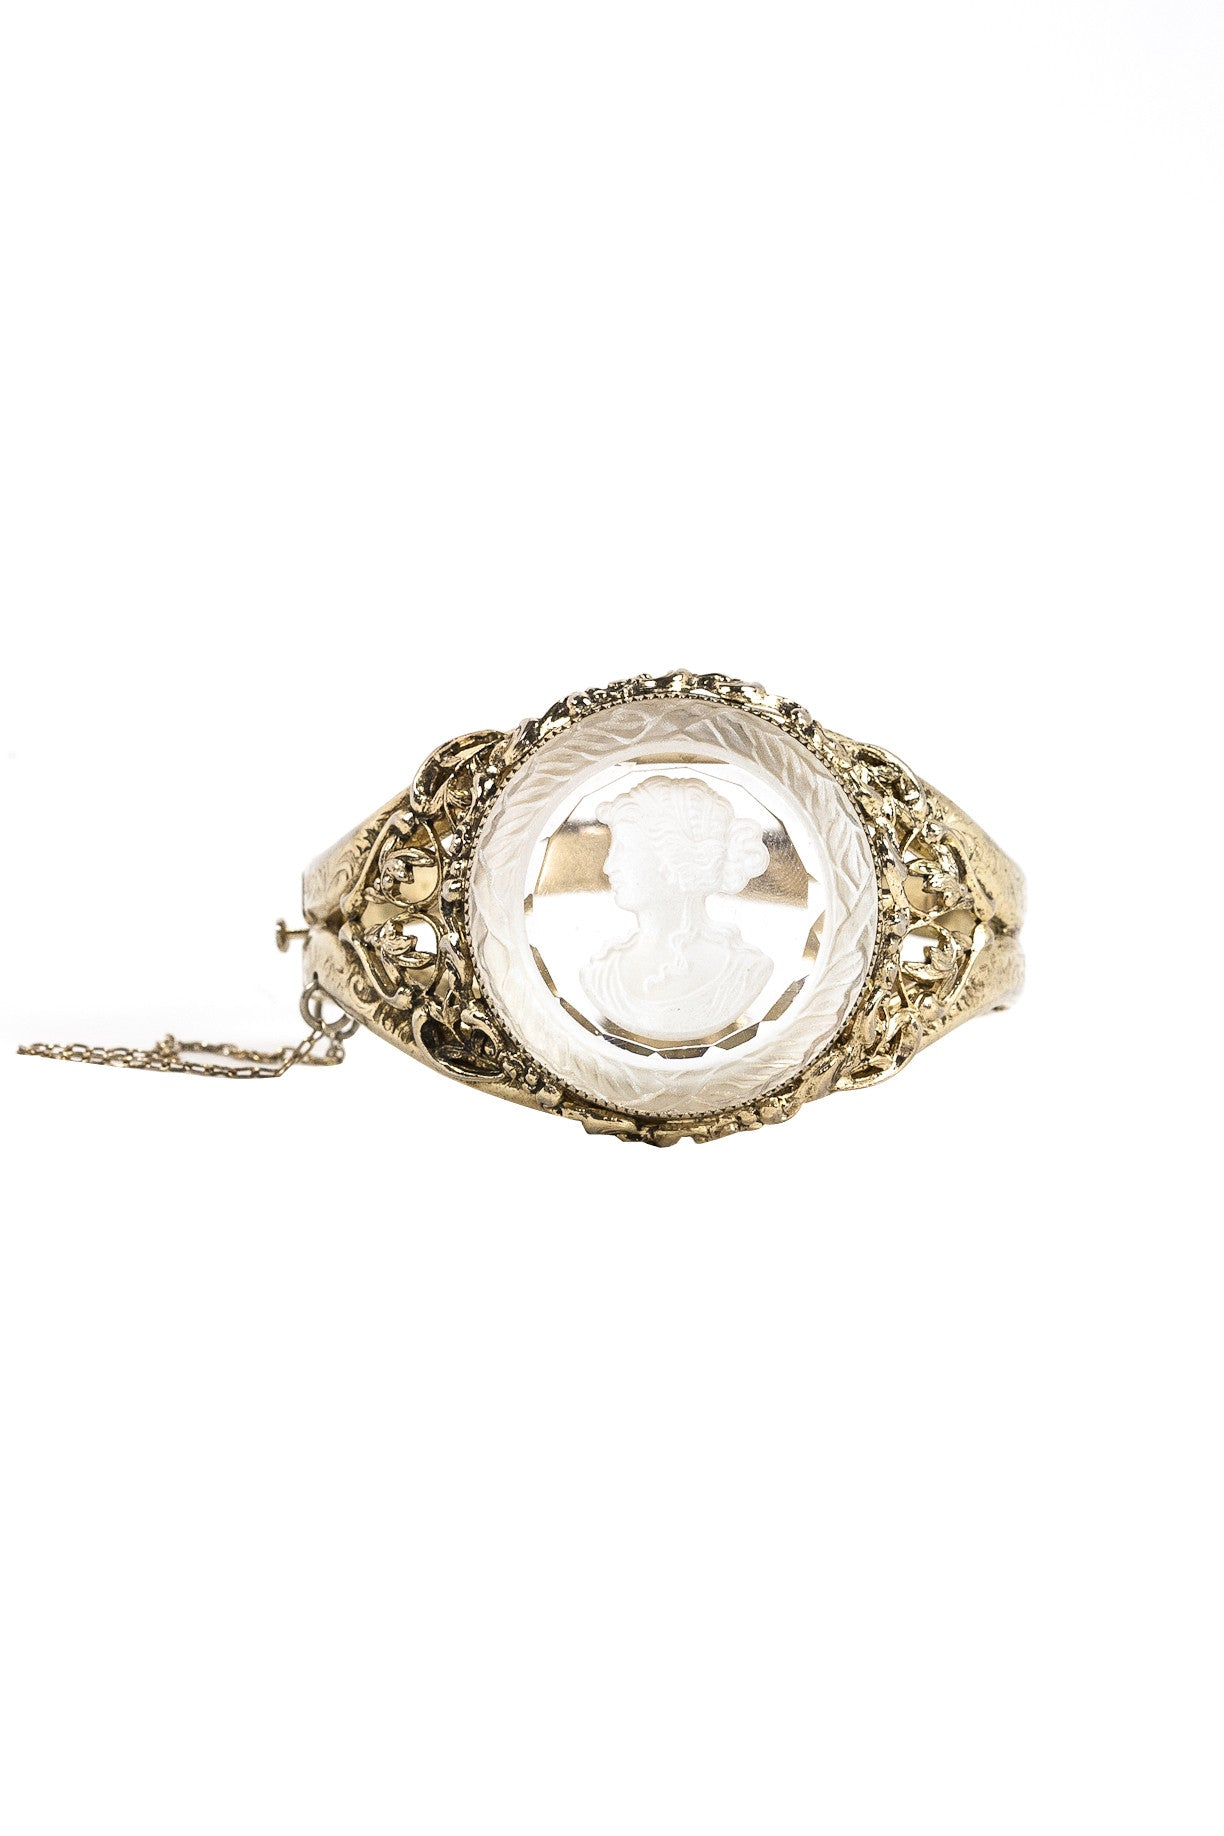 50's__Whiting and Davis__Cameo Lucite Statement Bracelet